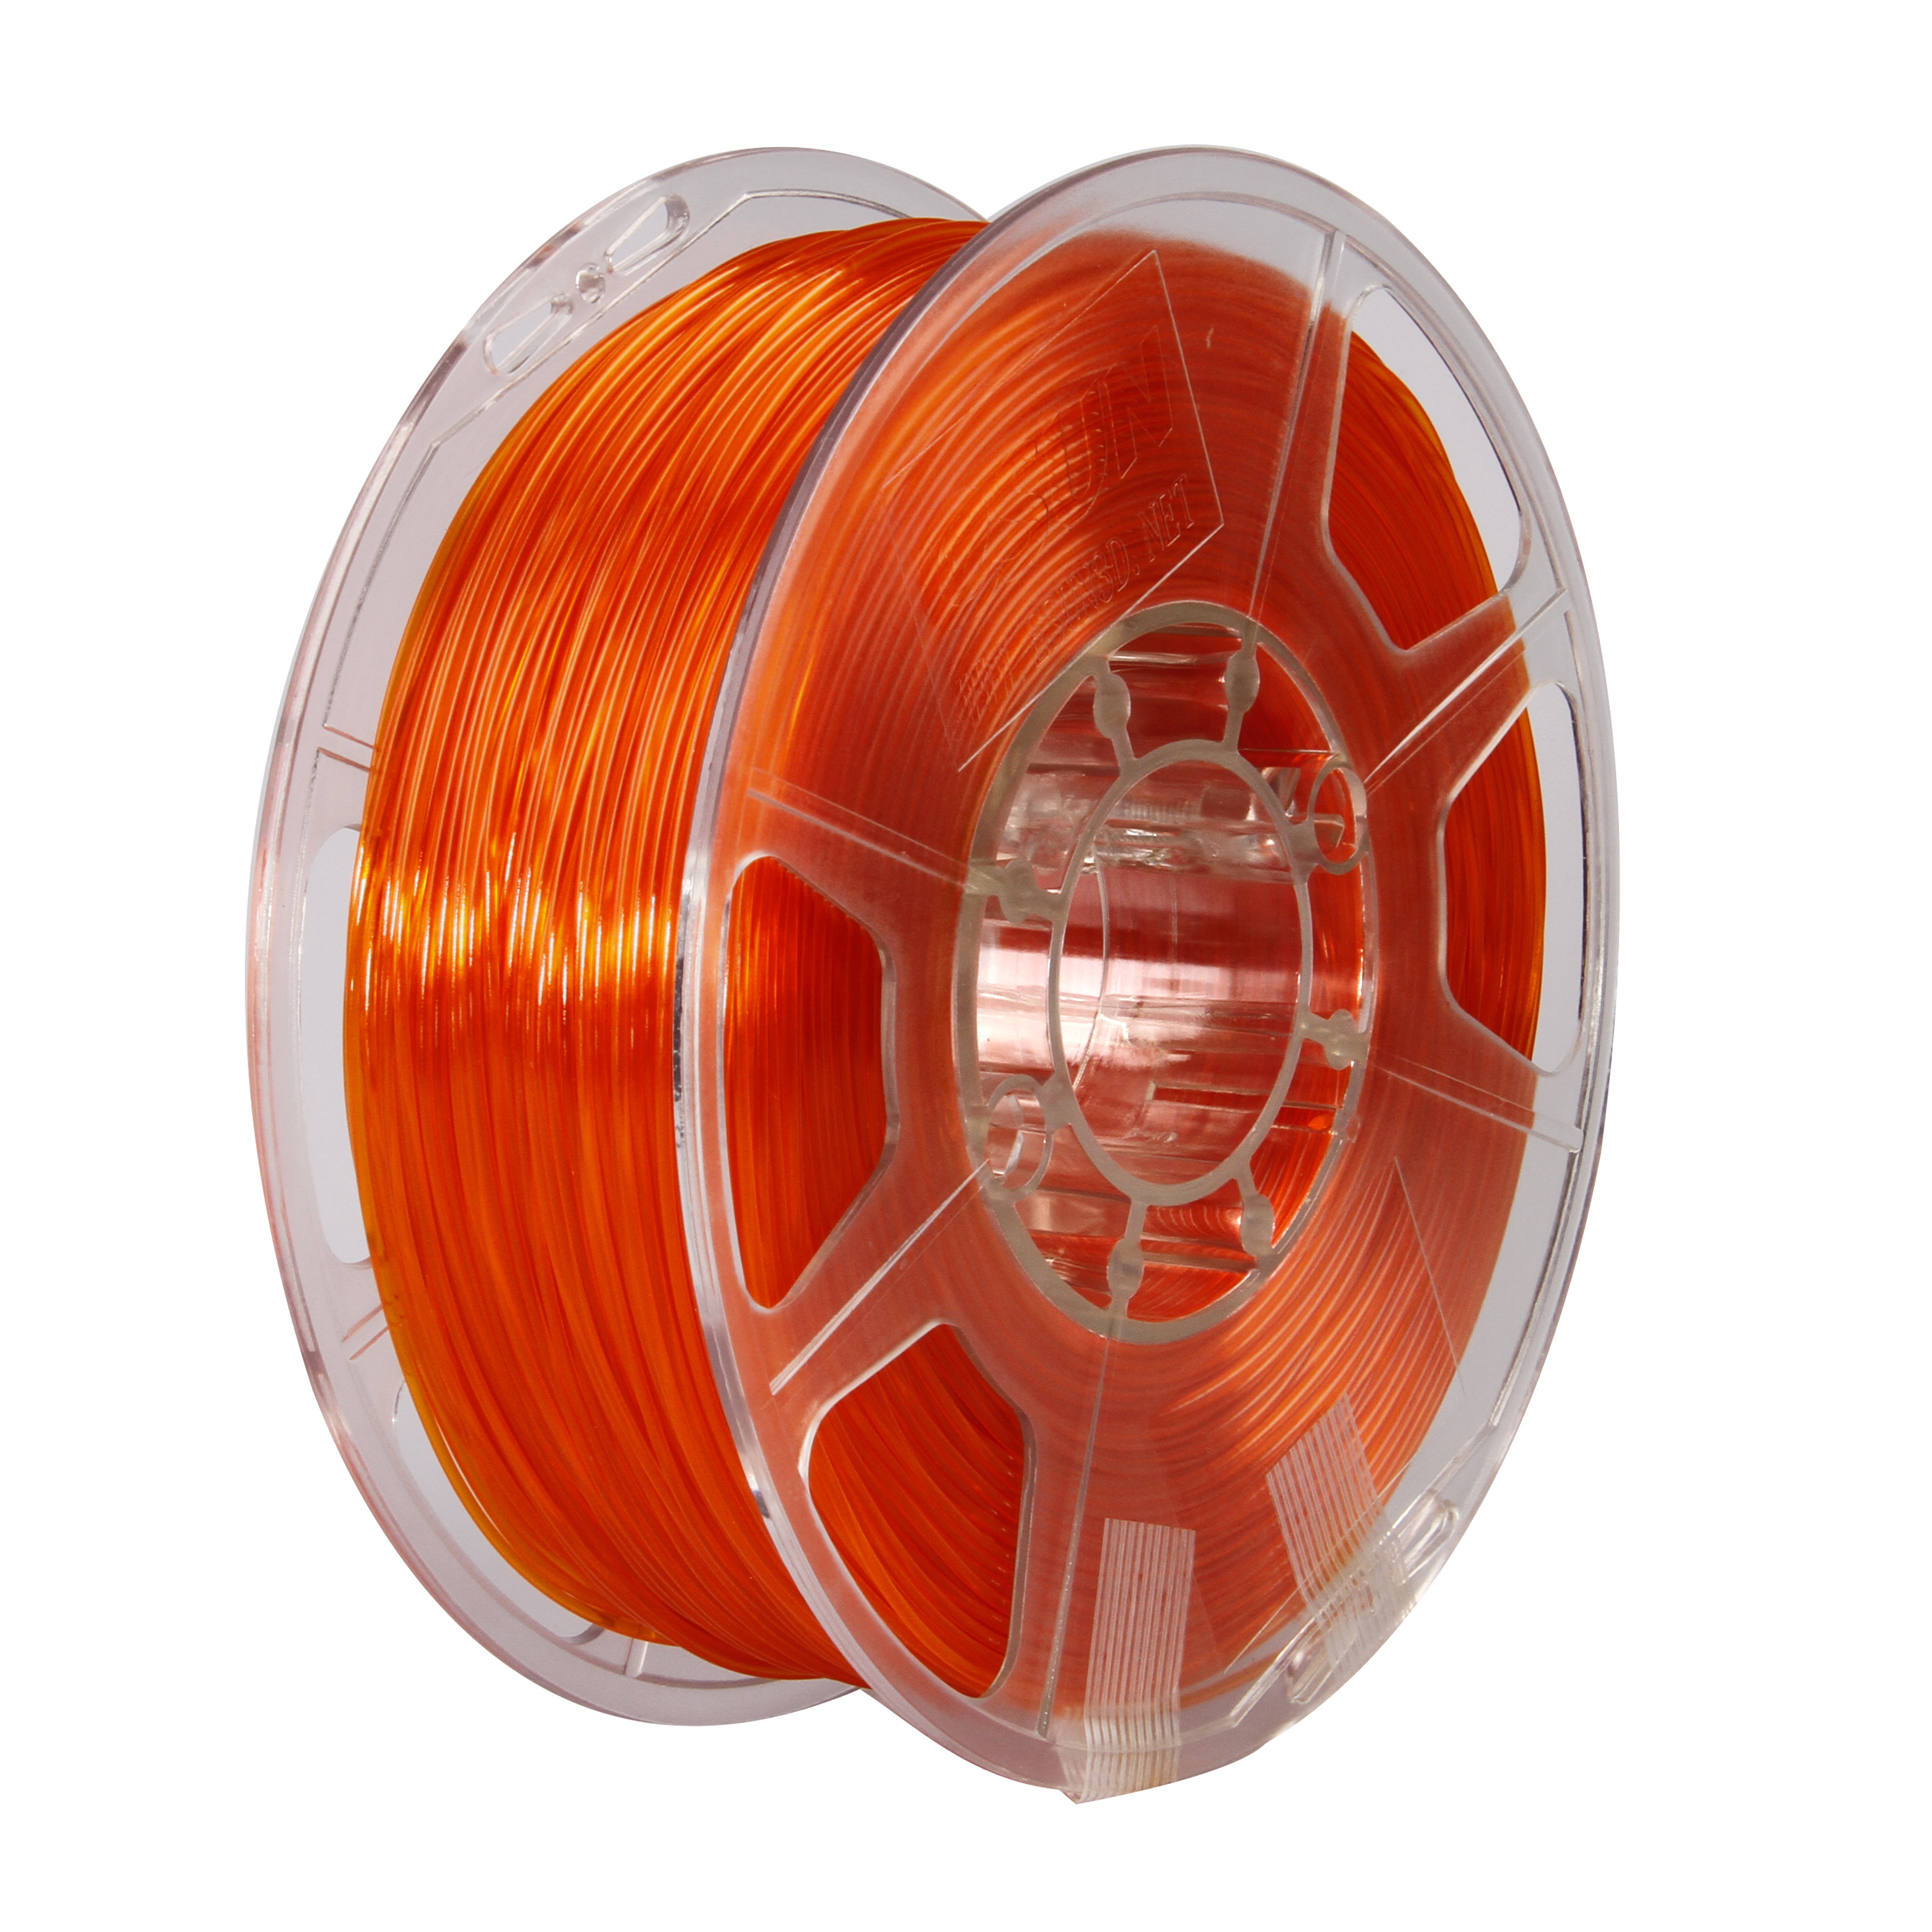 eSUN 3D 1.75mm PETG Orange Filament 1kg (2.2lb), PETG 3D Printer Filament, Semi-Transparent 1.75mm Orange